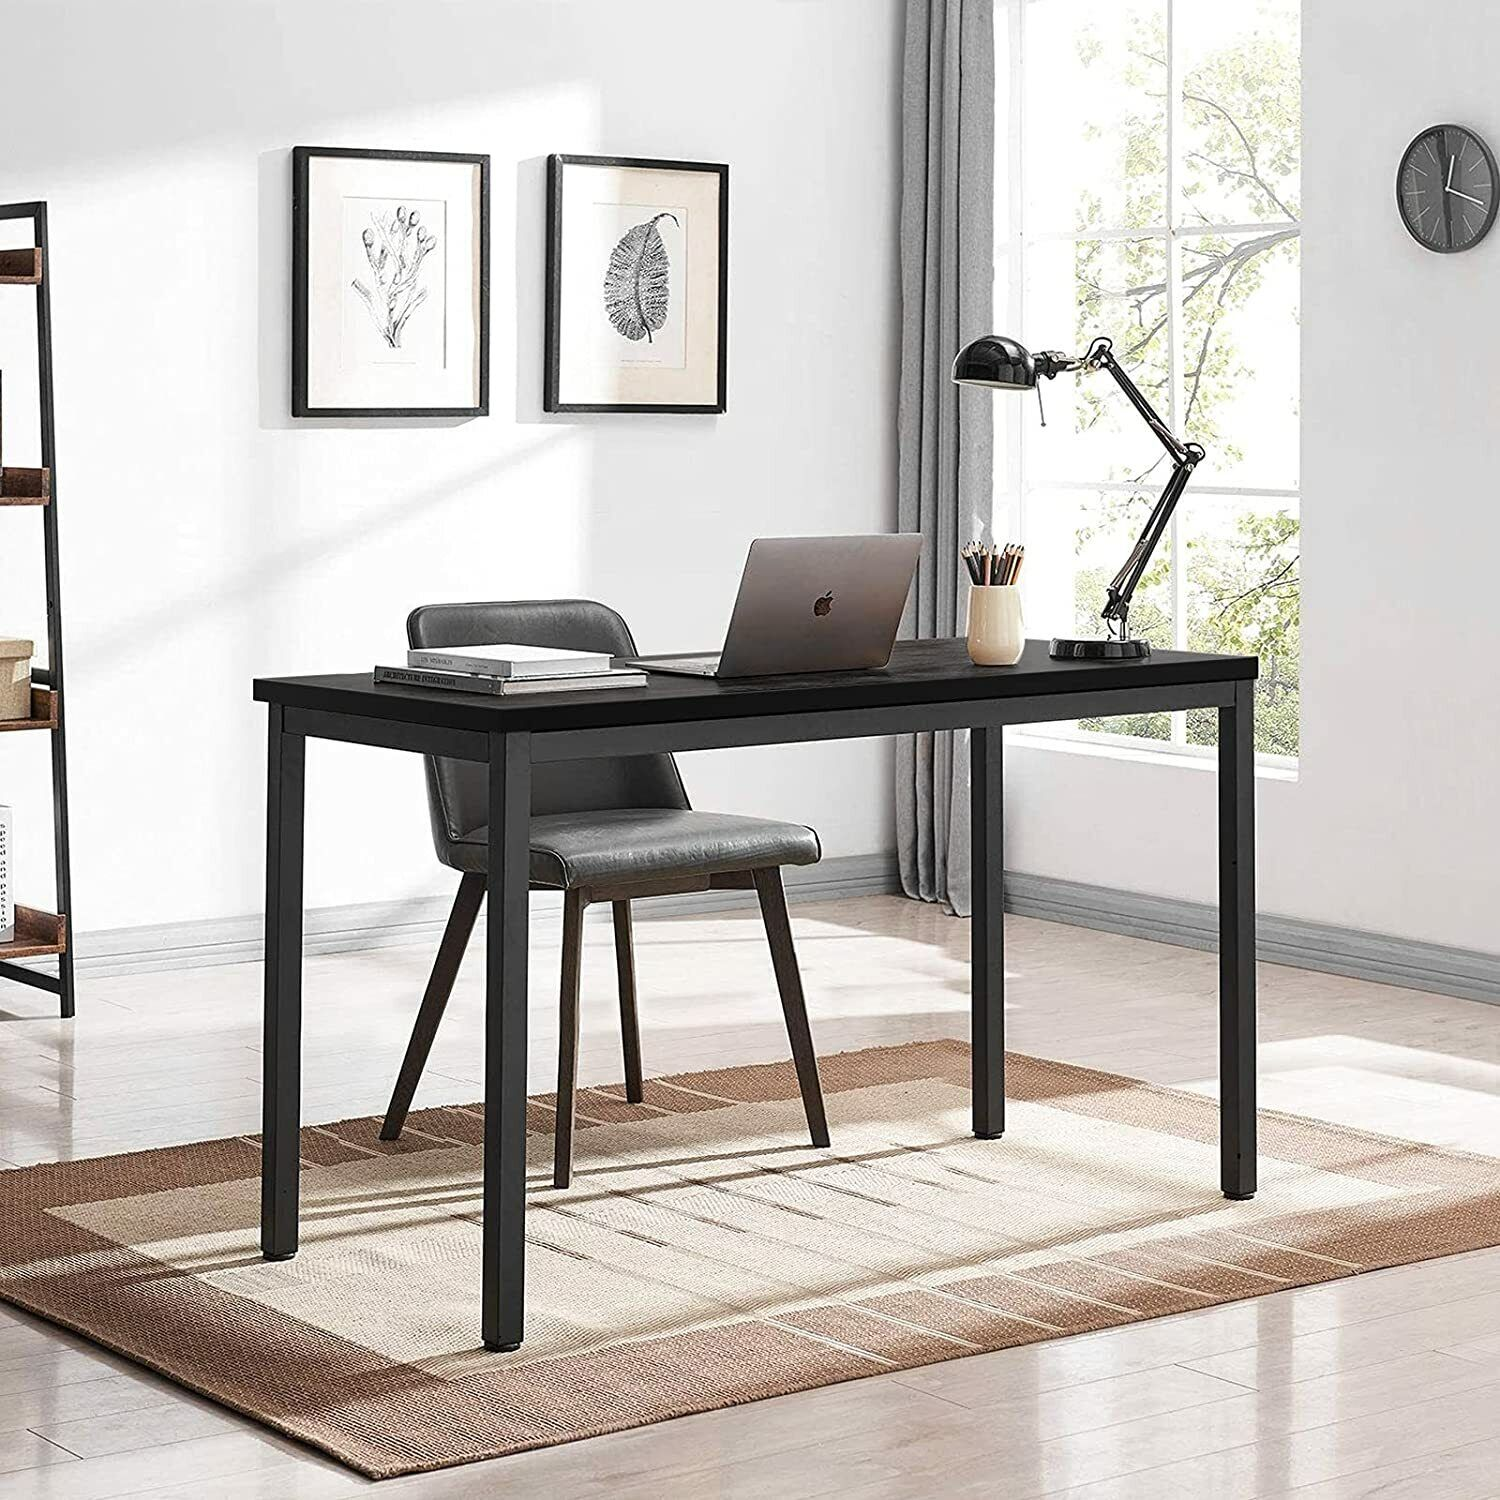 Computer Student Desk, Easy Assembly, Laptop Study Table 39″ Home Office Desk Furniture